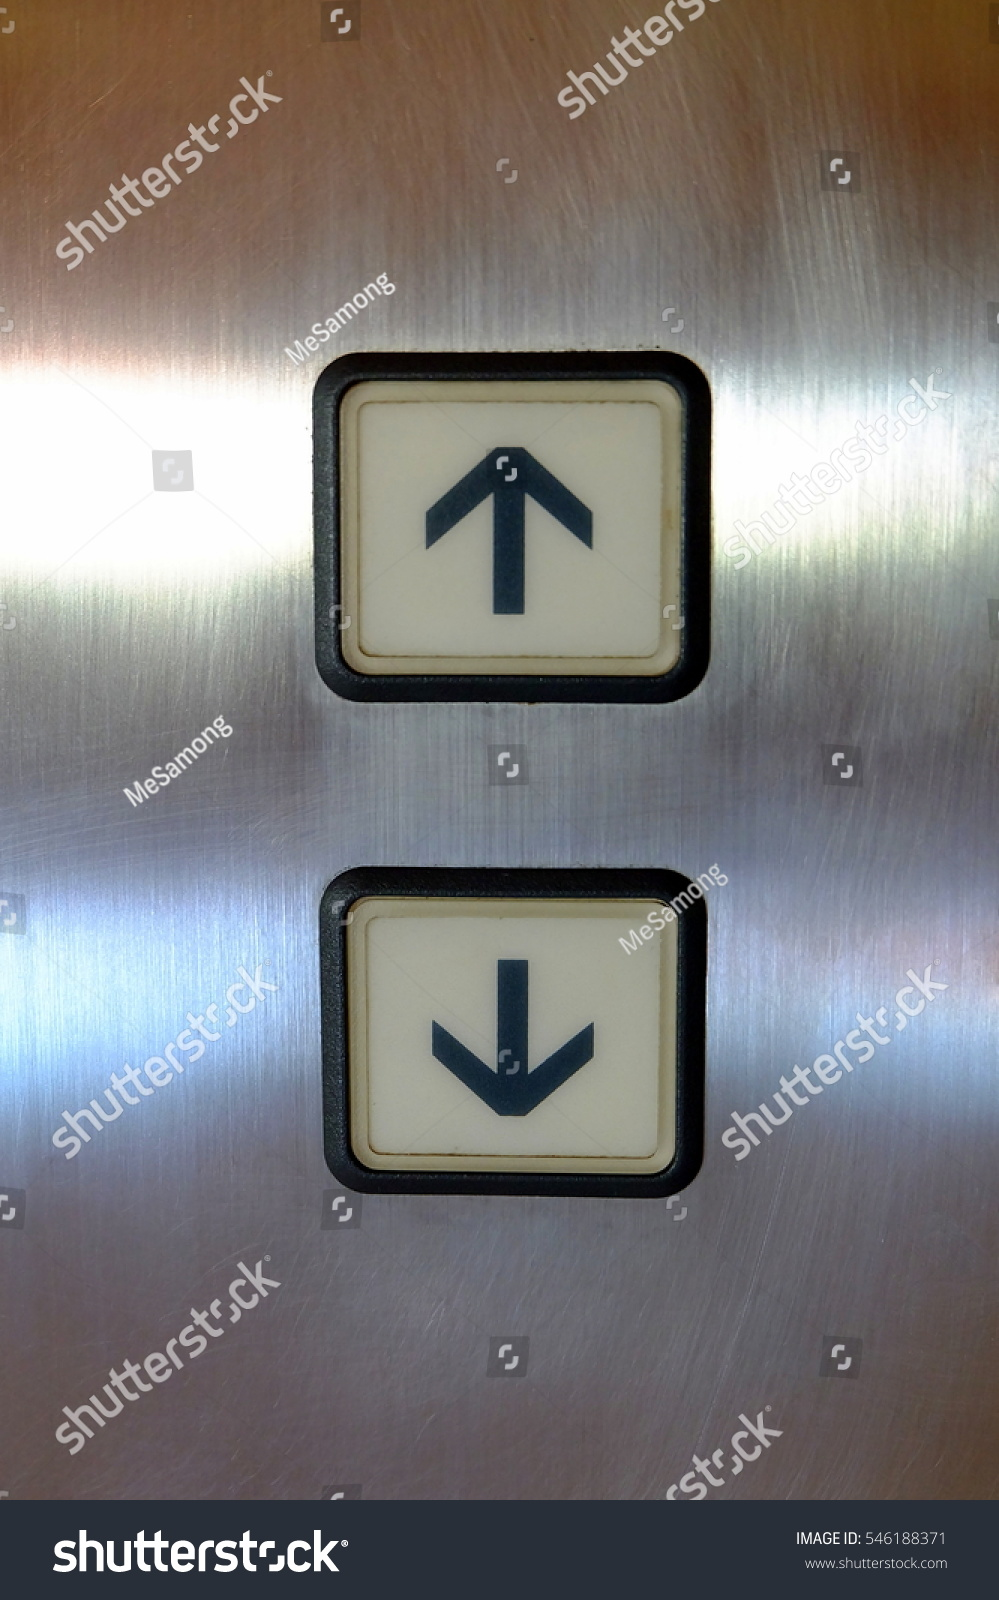 Elevator buttons arrow down stock photo 546188371 shutterstock elevator buttons arrow up and down biocorpaavc Choice Image